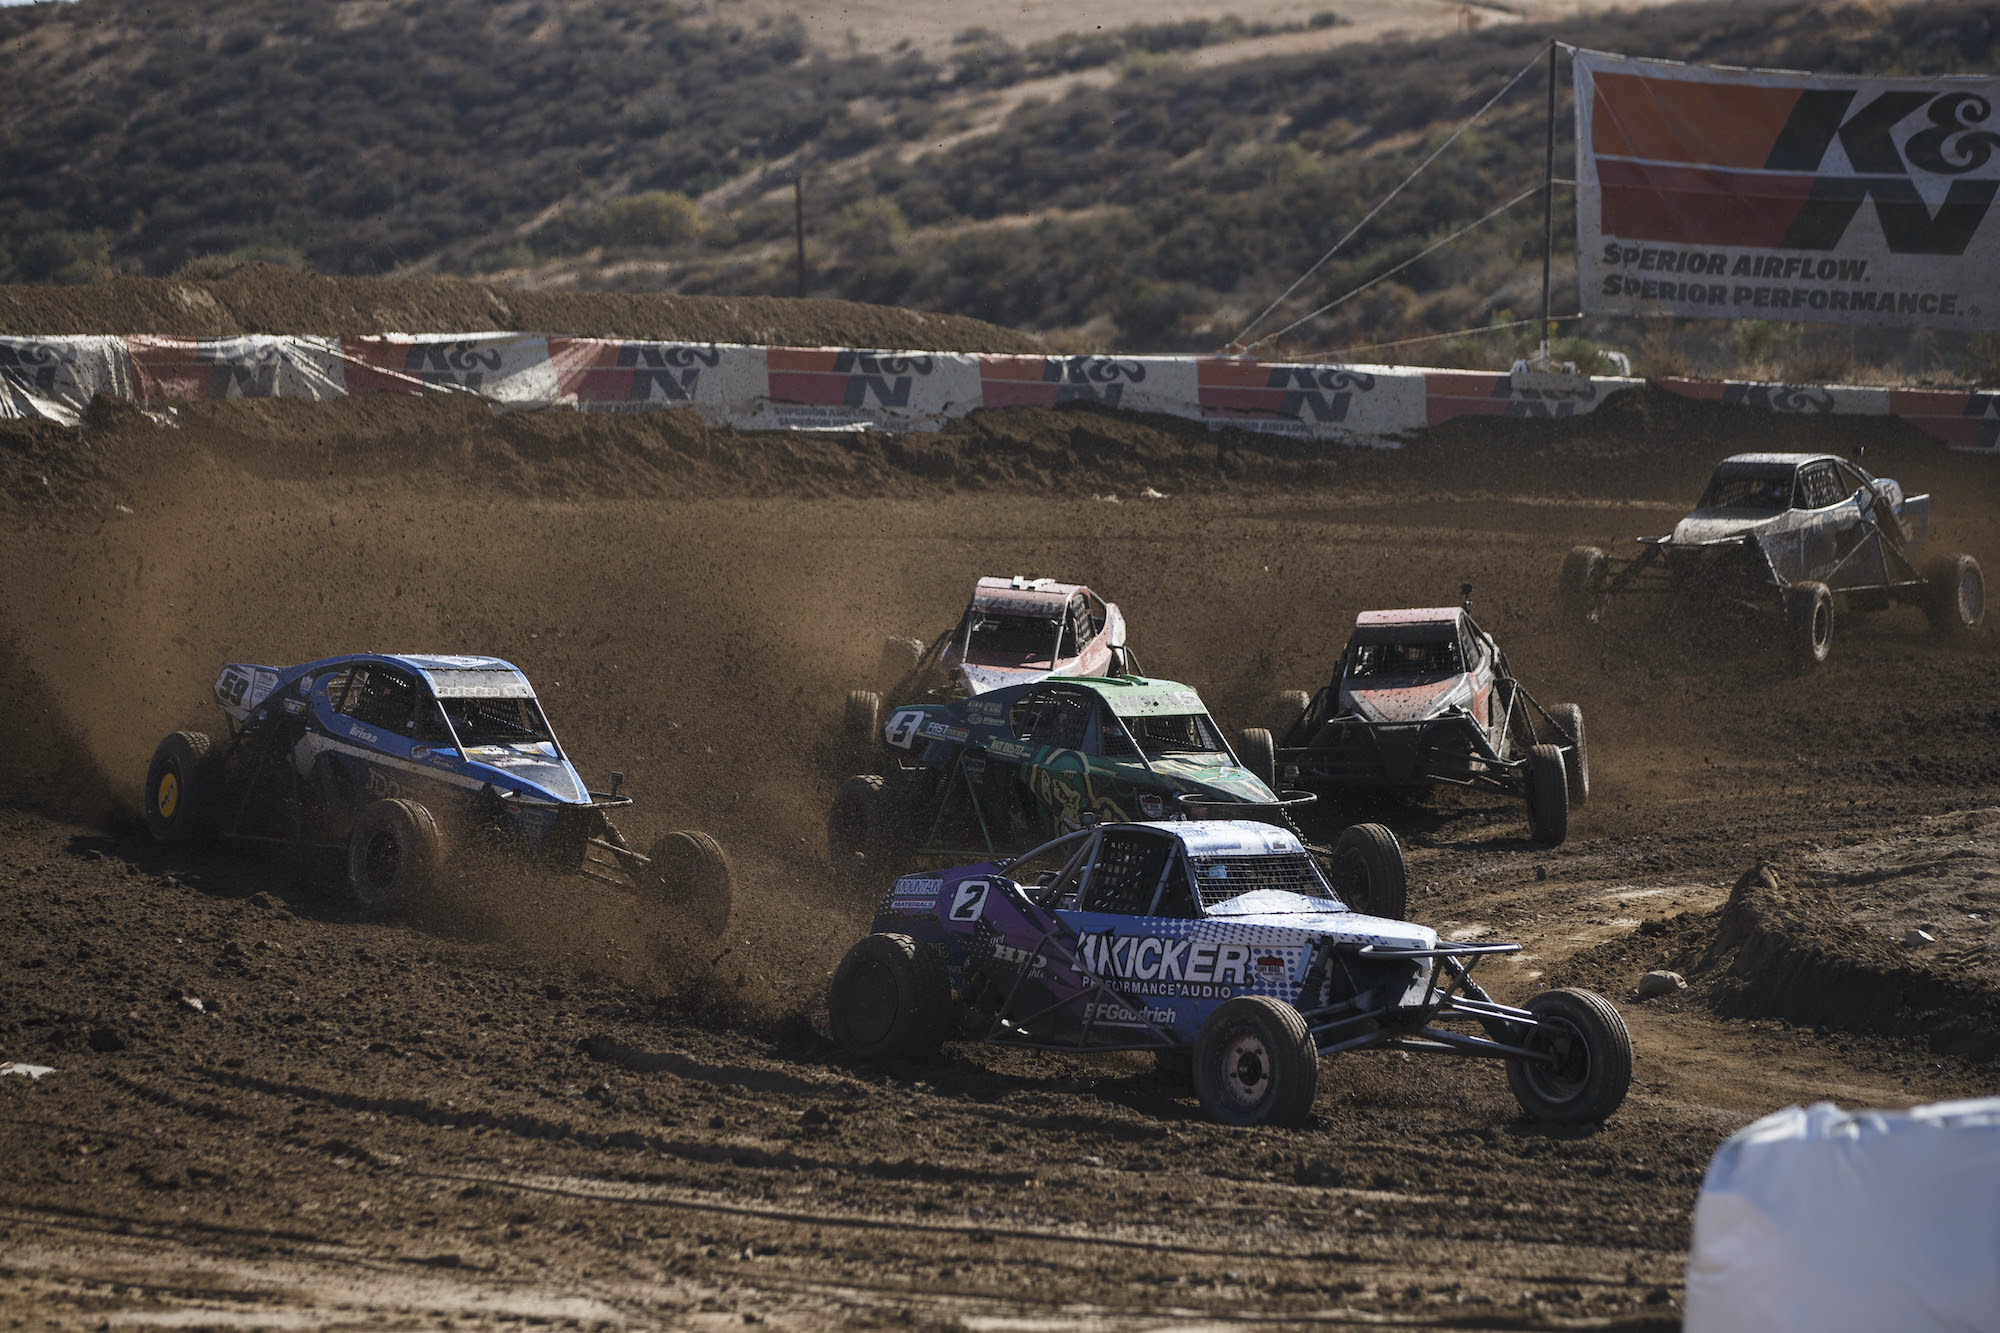 Pro Buggy will feature some of the most competitive action of the Lucas Oil Off Road Racing Series. Photo: Lucas Oil Off Road Racing Series